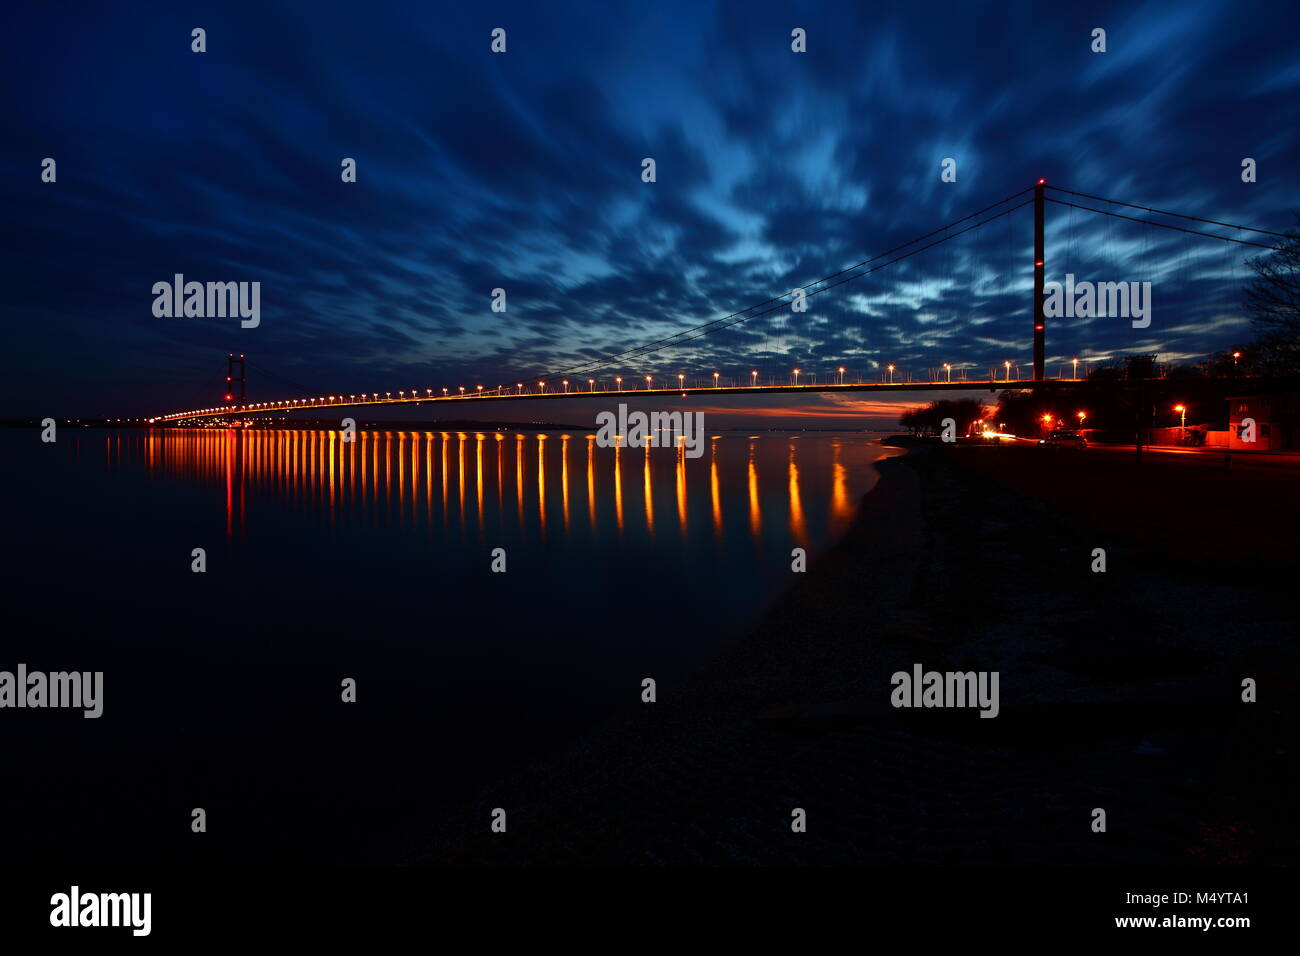 The Humber Bridge reflecting in the River Humber at night Stock Photo